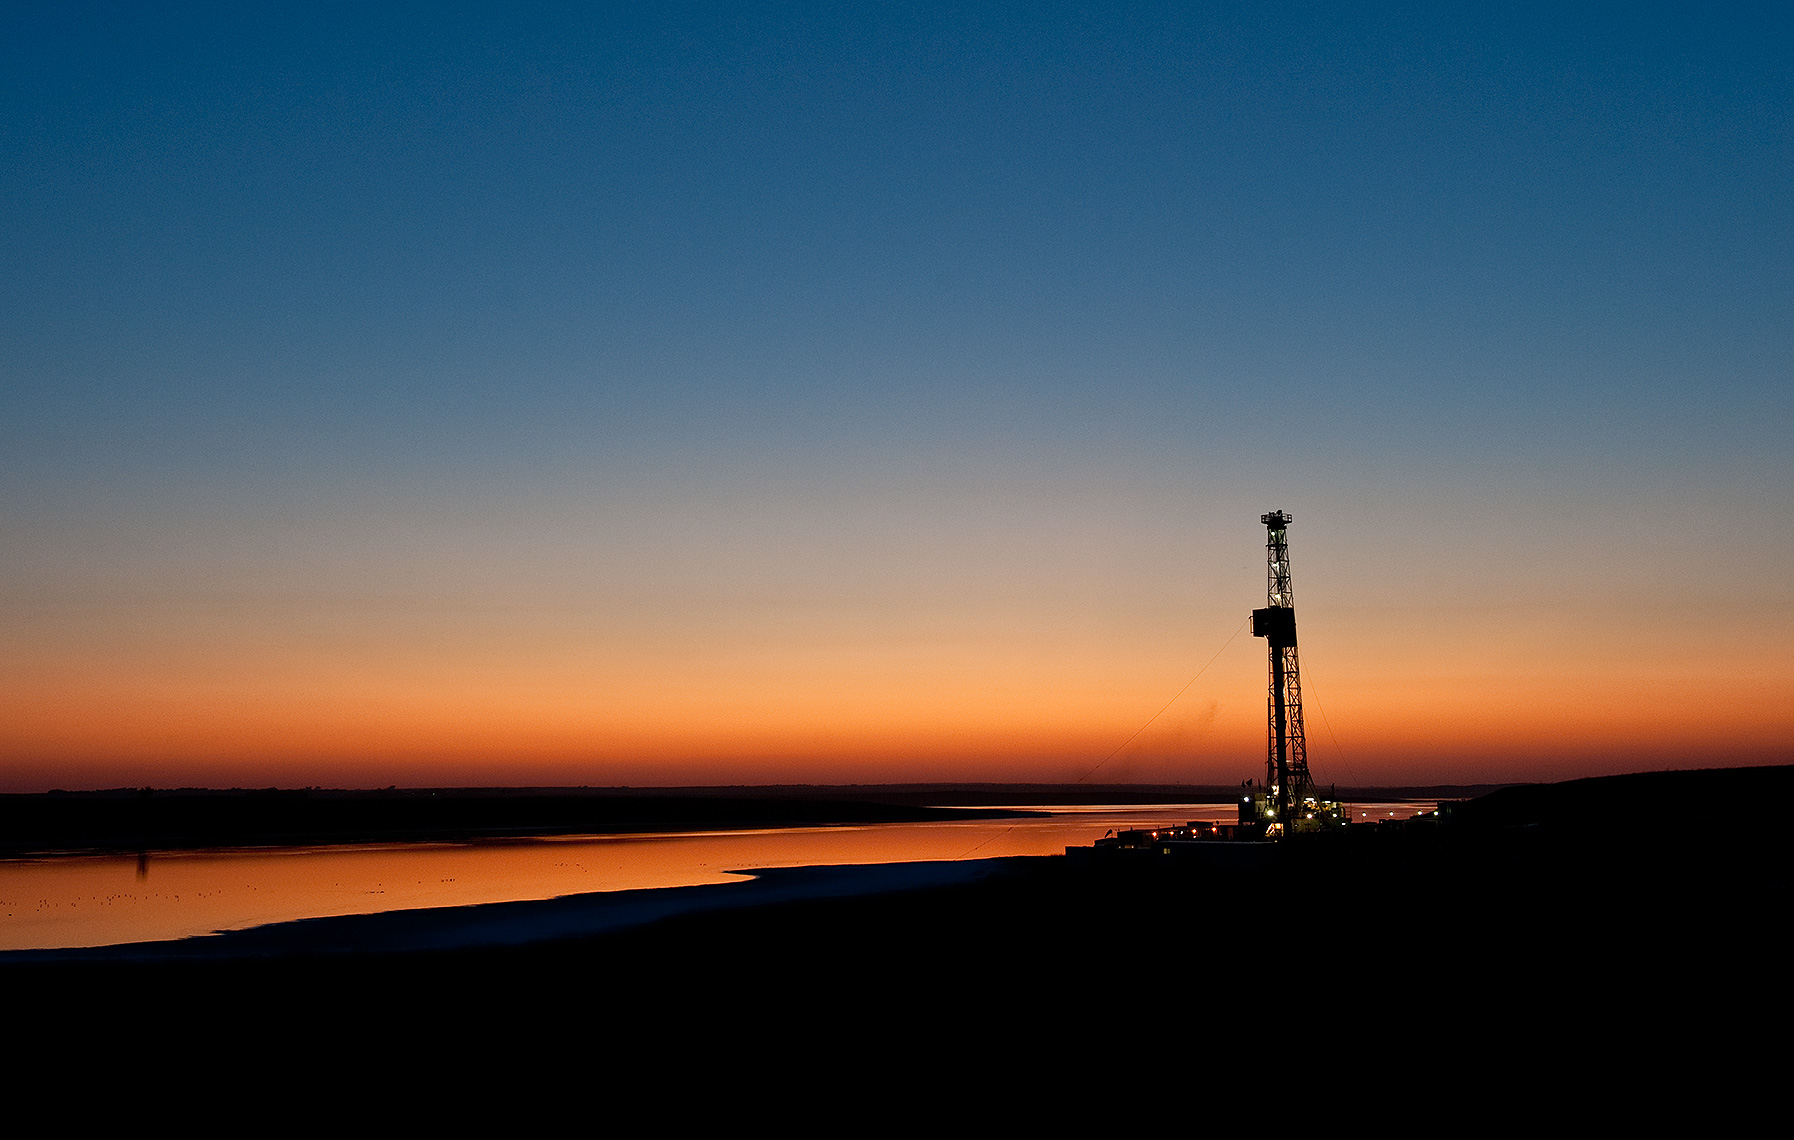 Oil Rig at Sunset Photograph